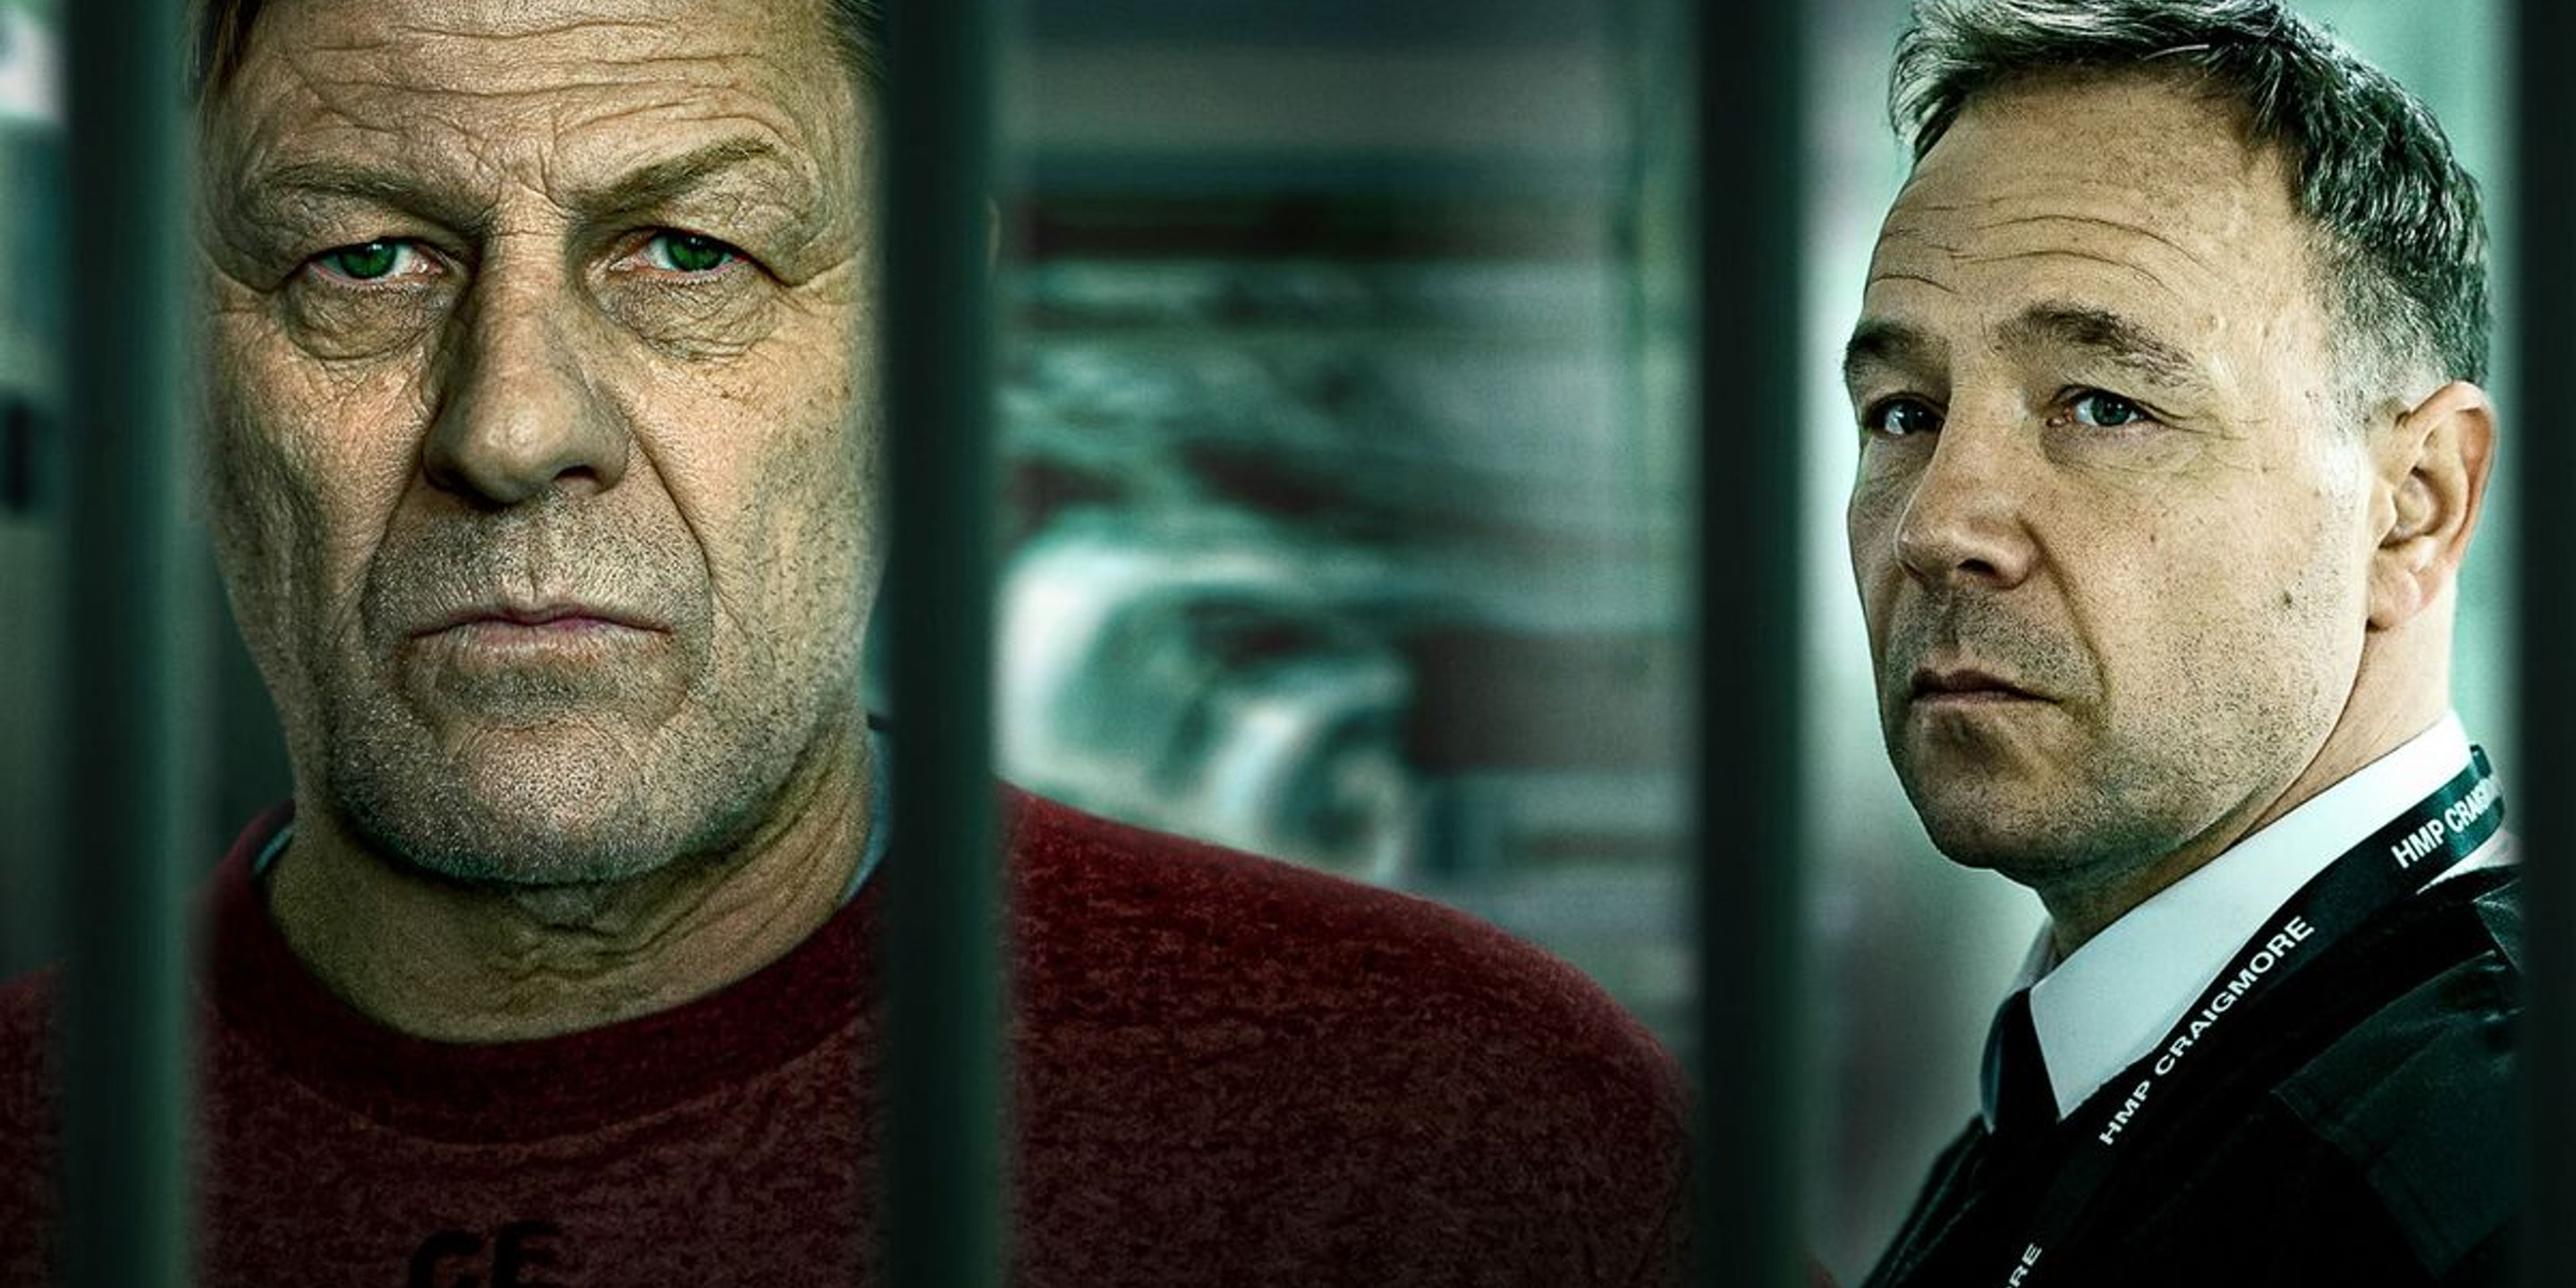 Certainly not a waste of your time: a review of new BBC drama Time starring Stephen Graham and Sean Bean